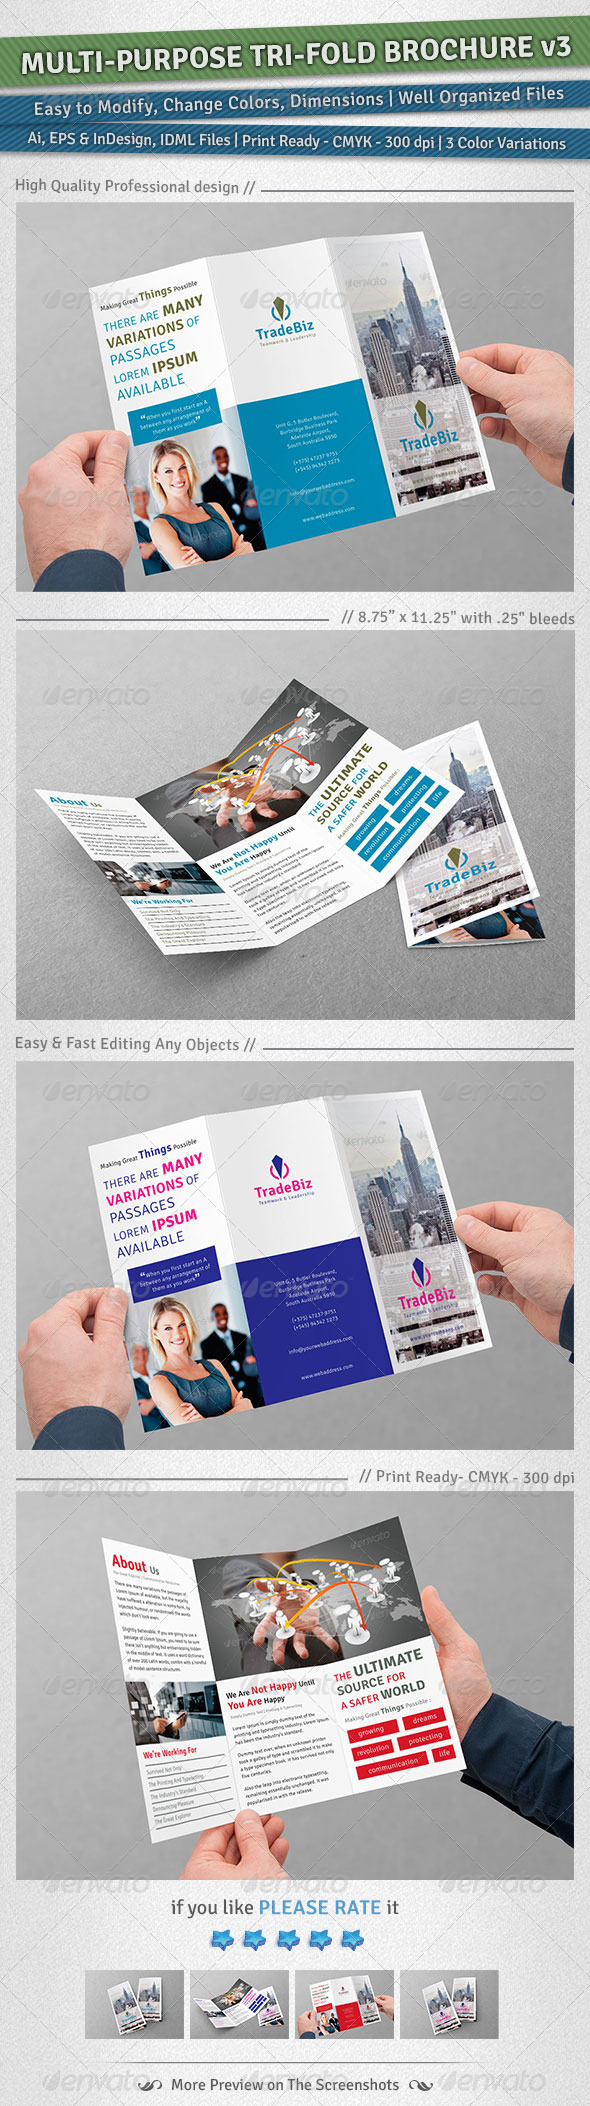 GraphicRiver Multi-purpose Tri-Fold Brochure Volume 3 4928723